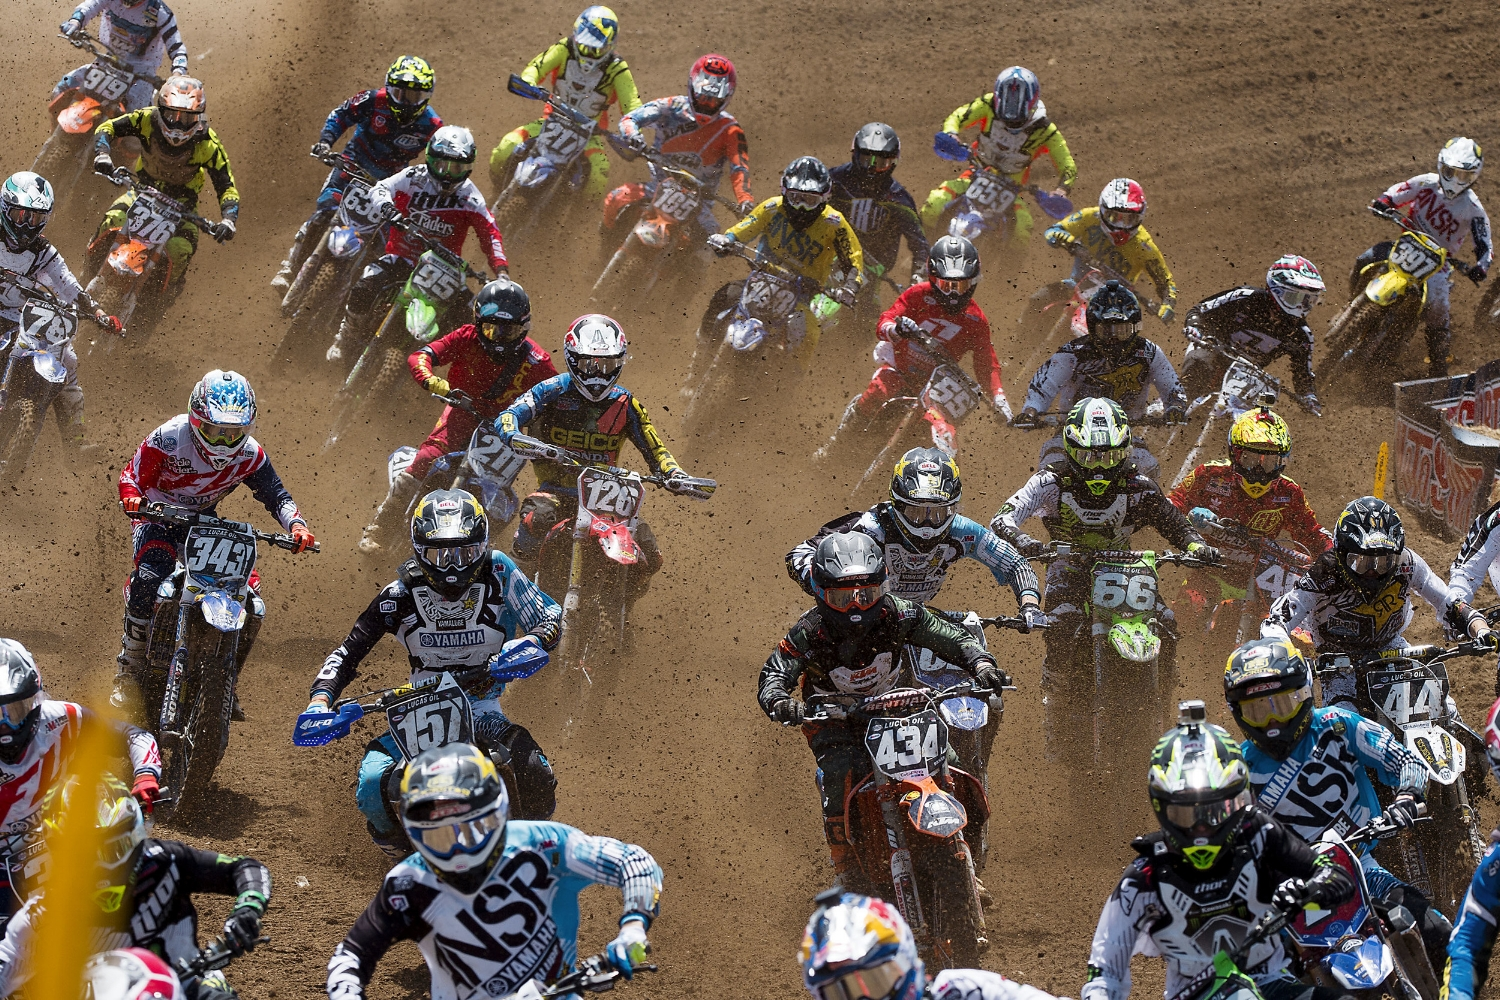 Riders race through the dirt in the first 250 moto during the annual Hangtown Motocross Classic motocross event at Prairie City SRVA in Rancho Cordova on Saturday, May 16, 2015.